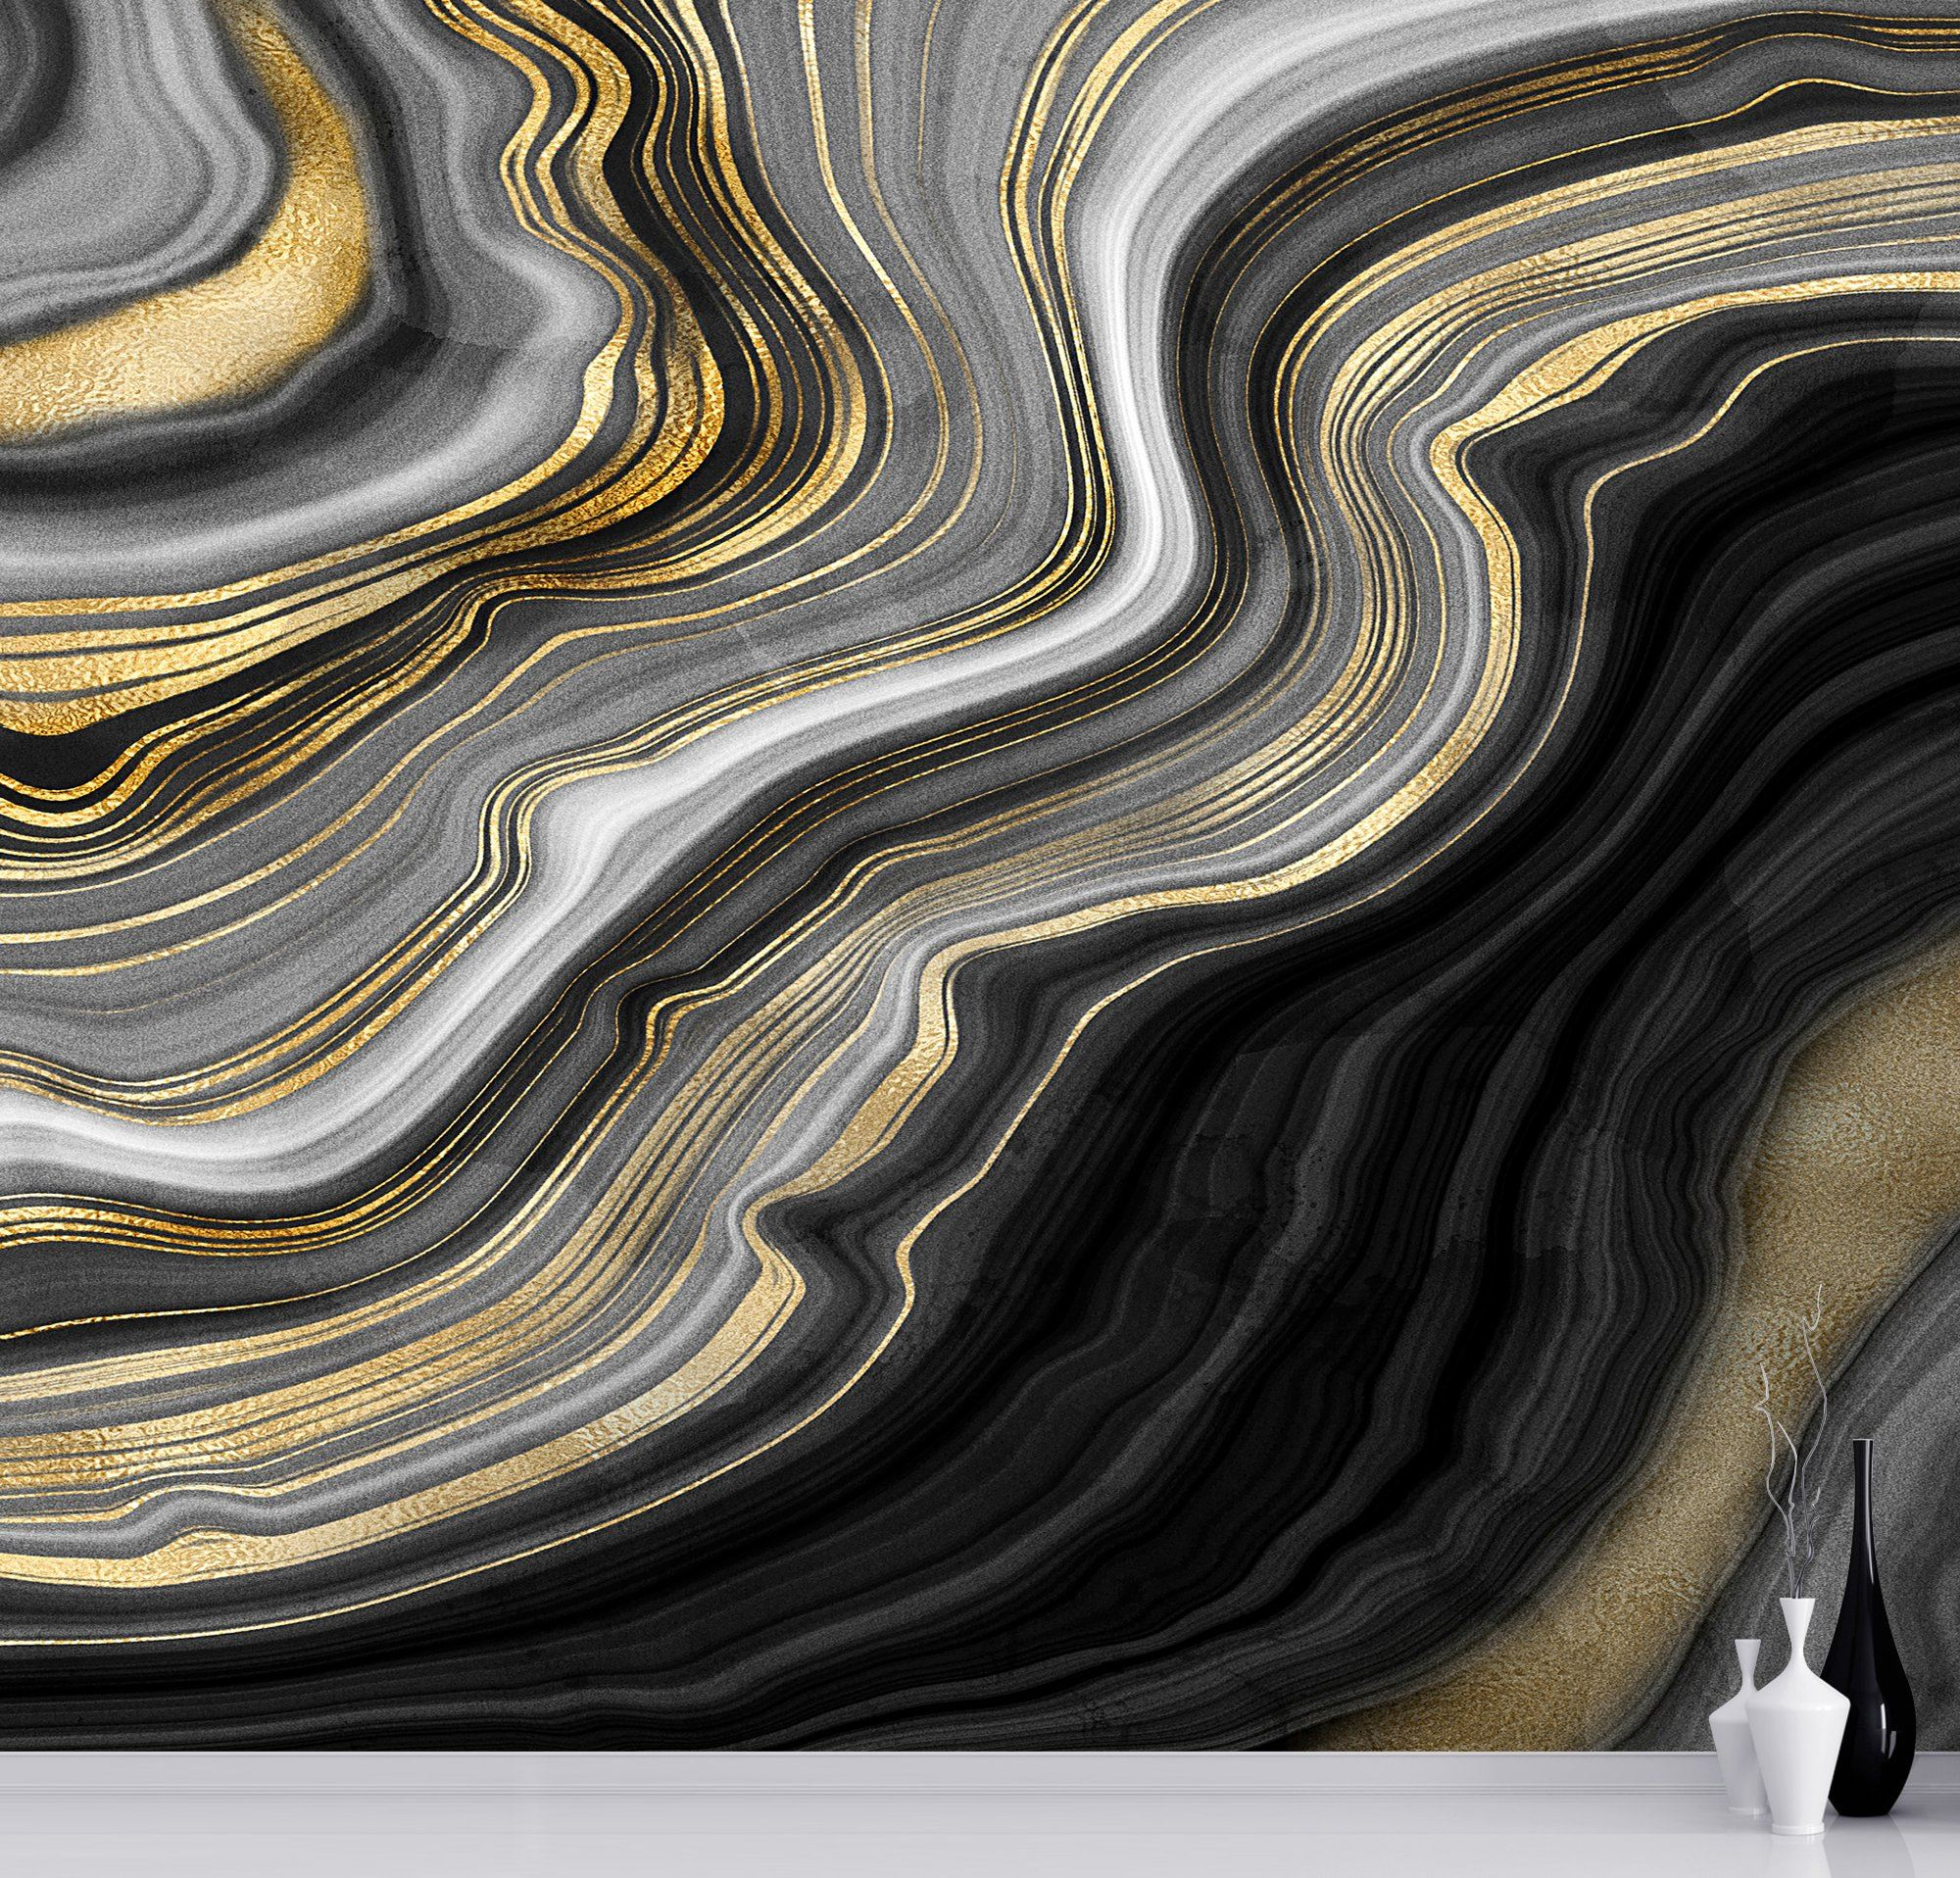 Details About Black And Gold Abstract Marble Stone Pattern Peel And Stick Wallpaper 6146 2